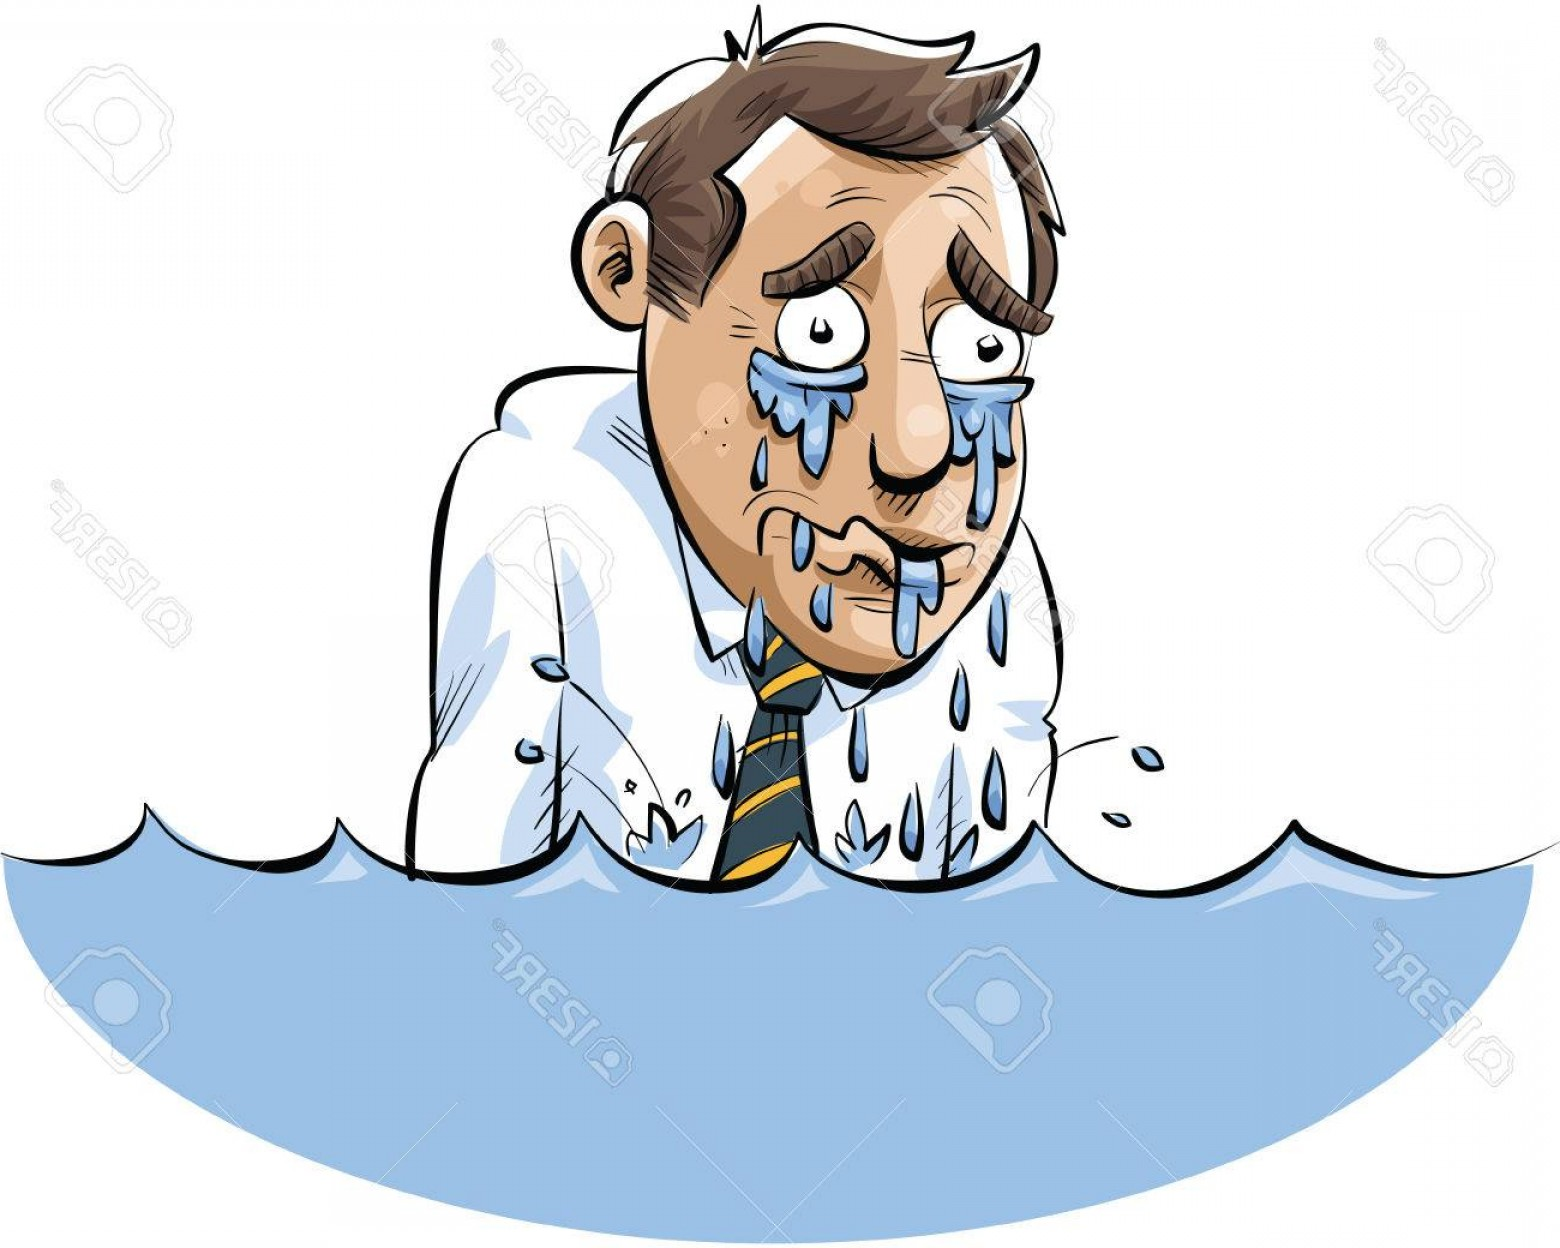 Man Drowning Vector: Photostock Vector A Cartoon Man Drowning In A Lake Of His Own Tears